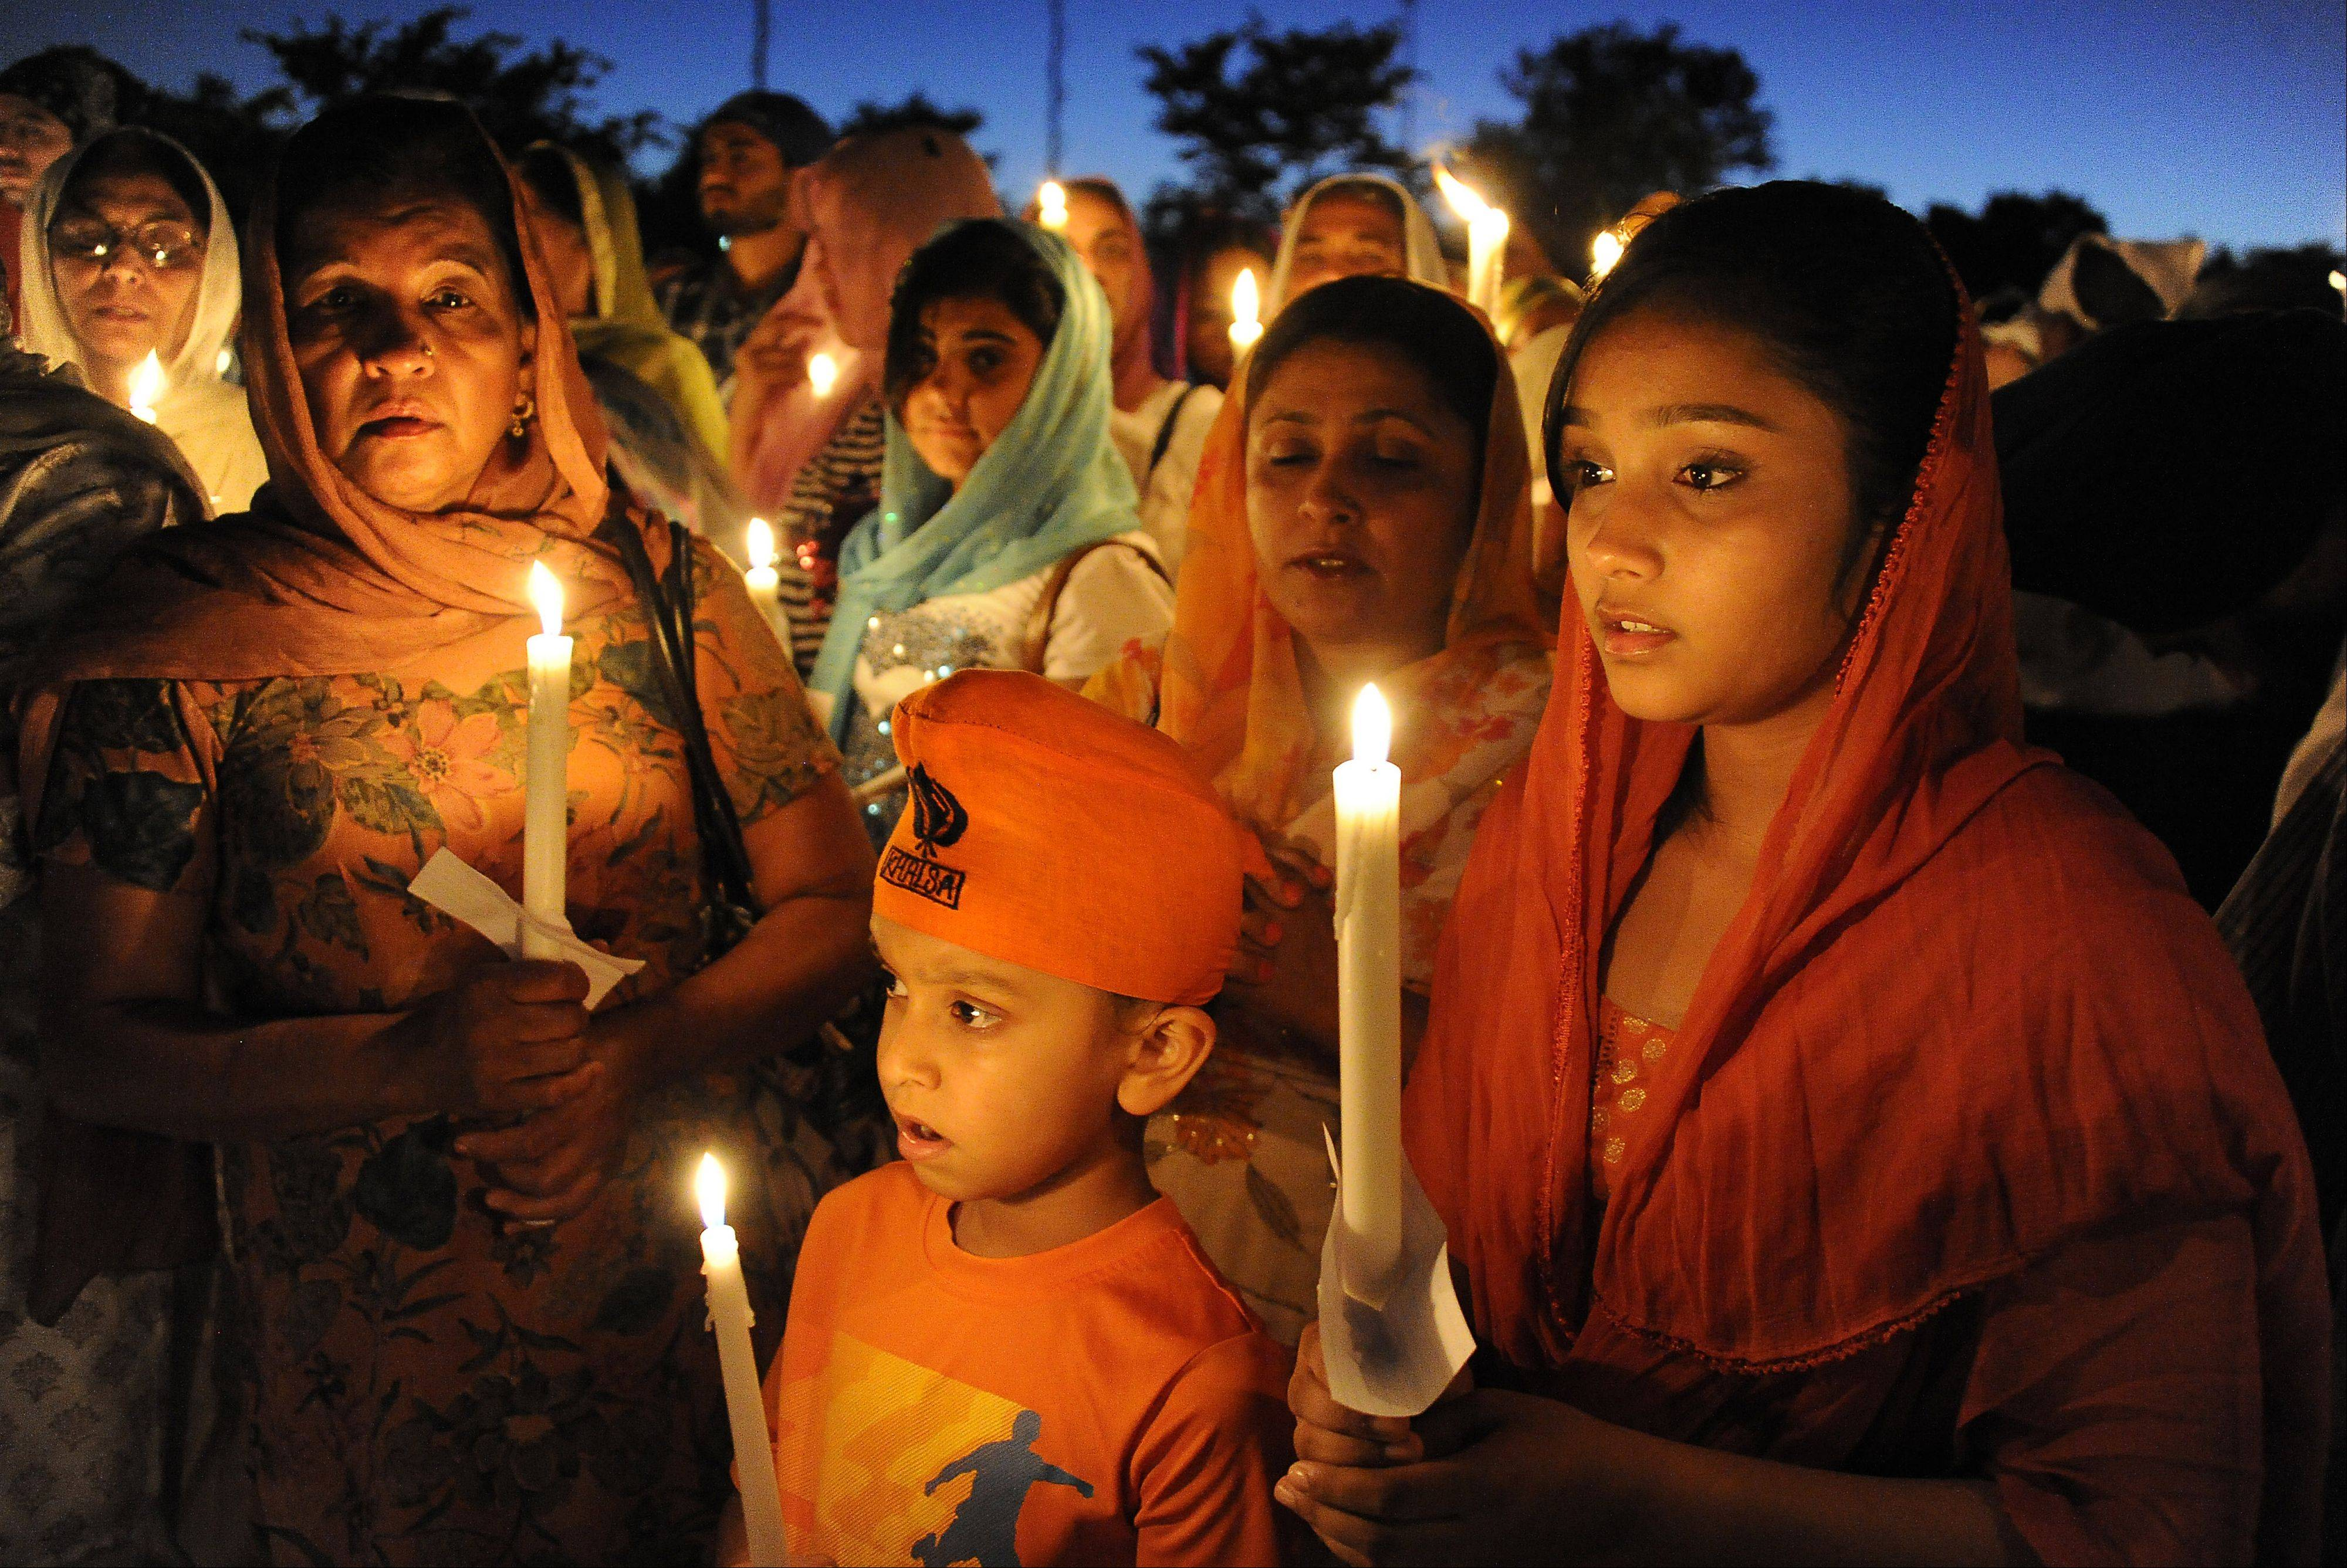 The Sikh Religious Society gurdwara in Palatine held a candlelight vigil with Simmi Dhami, far right, 13, Harsajan Dhami, center, 6, and their mother, Jeewan Dhami, near right, paying their respects to the Sikhs killed in the Wisconsin temple shooting.